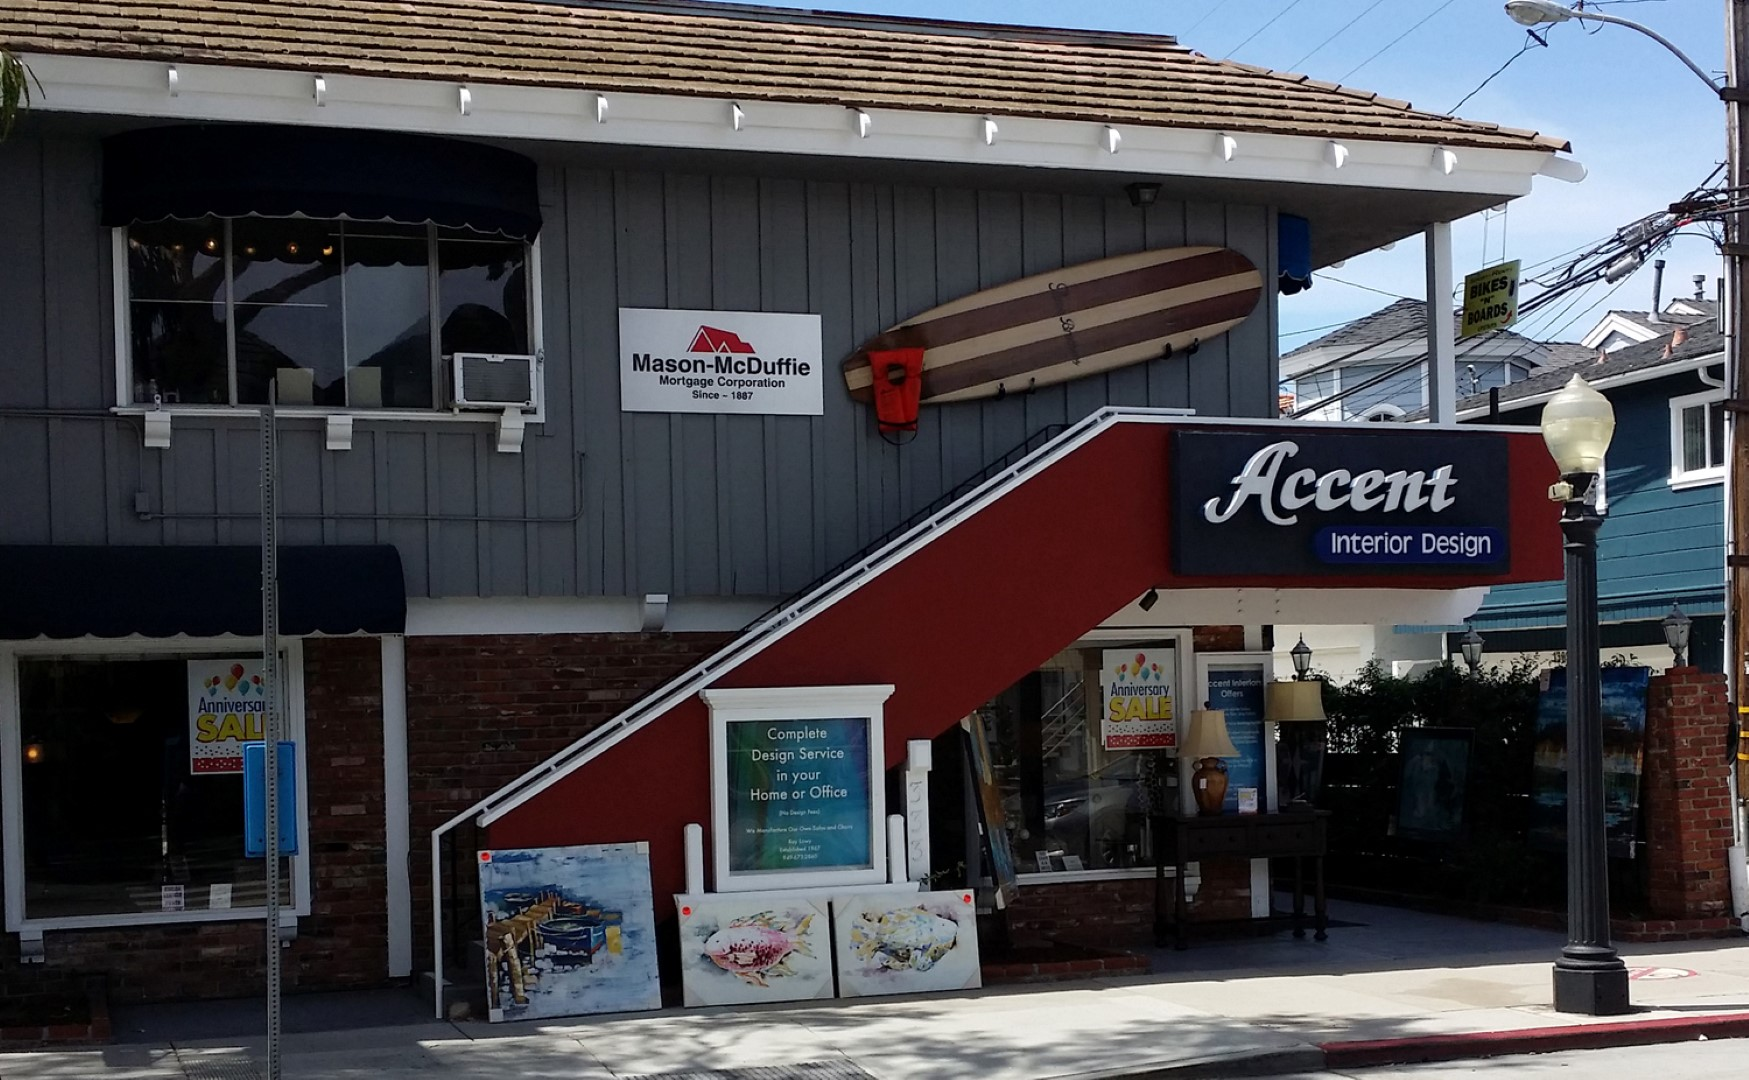 Accent Interior Design Balboa Island Newport Beach Marine Avenue